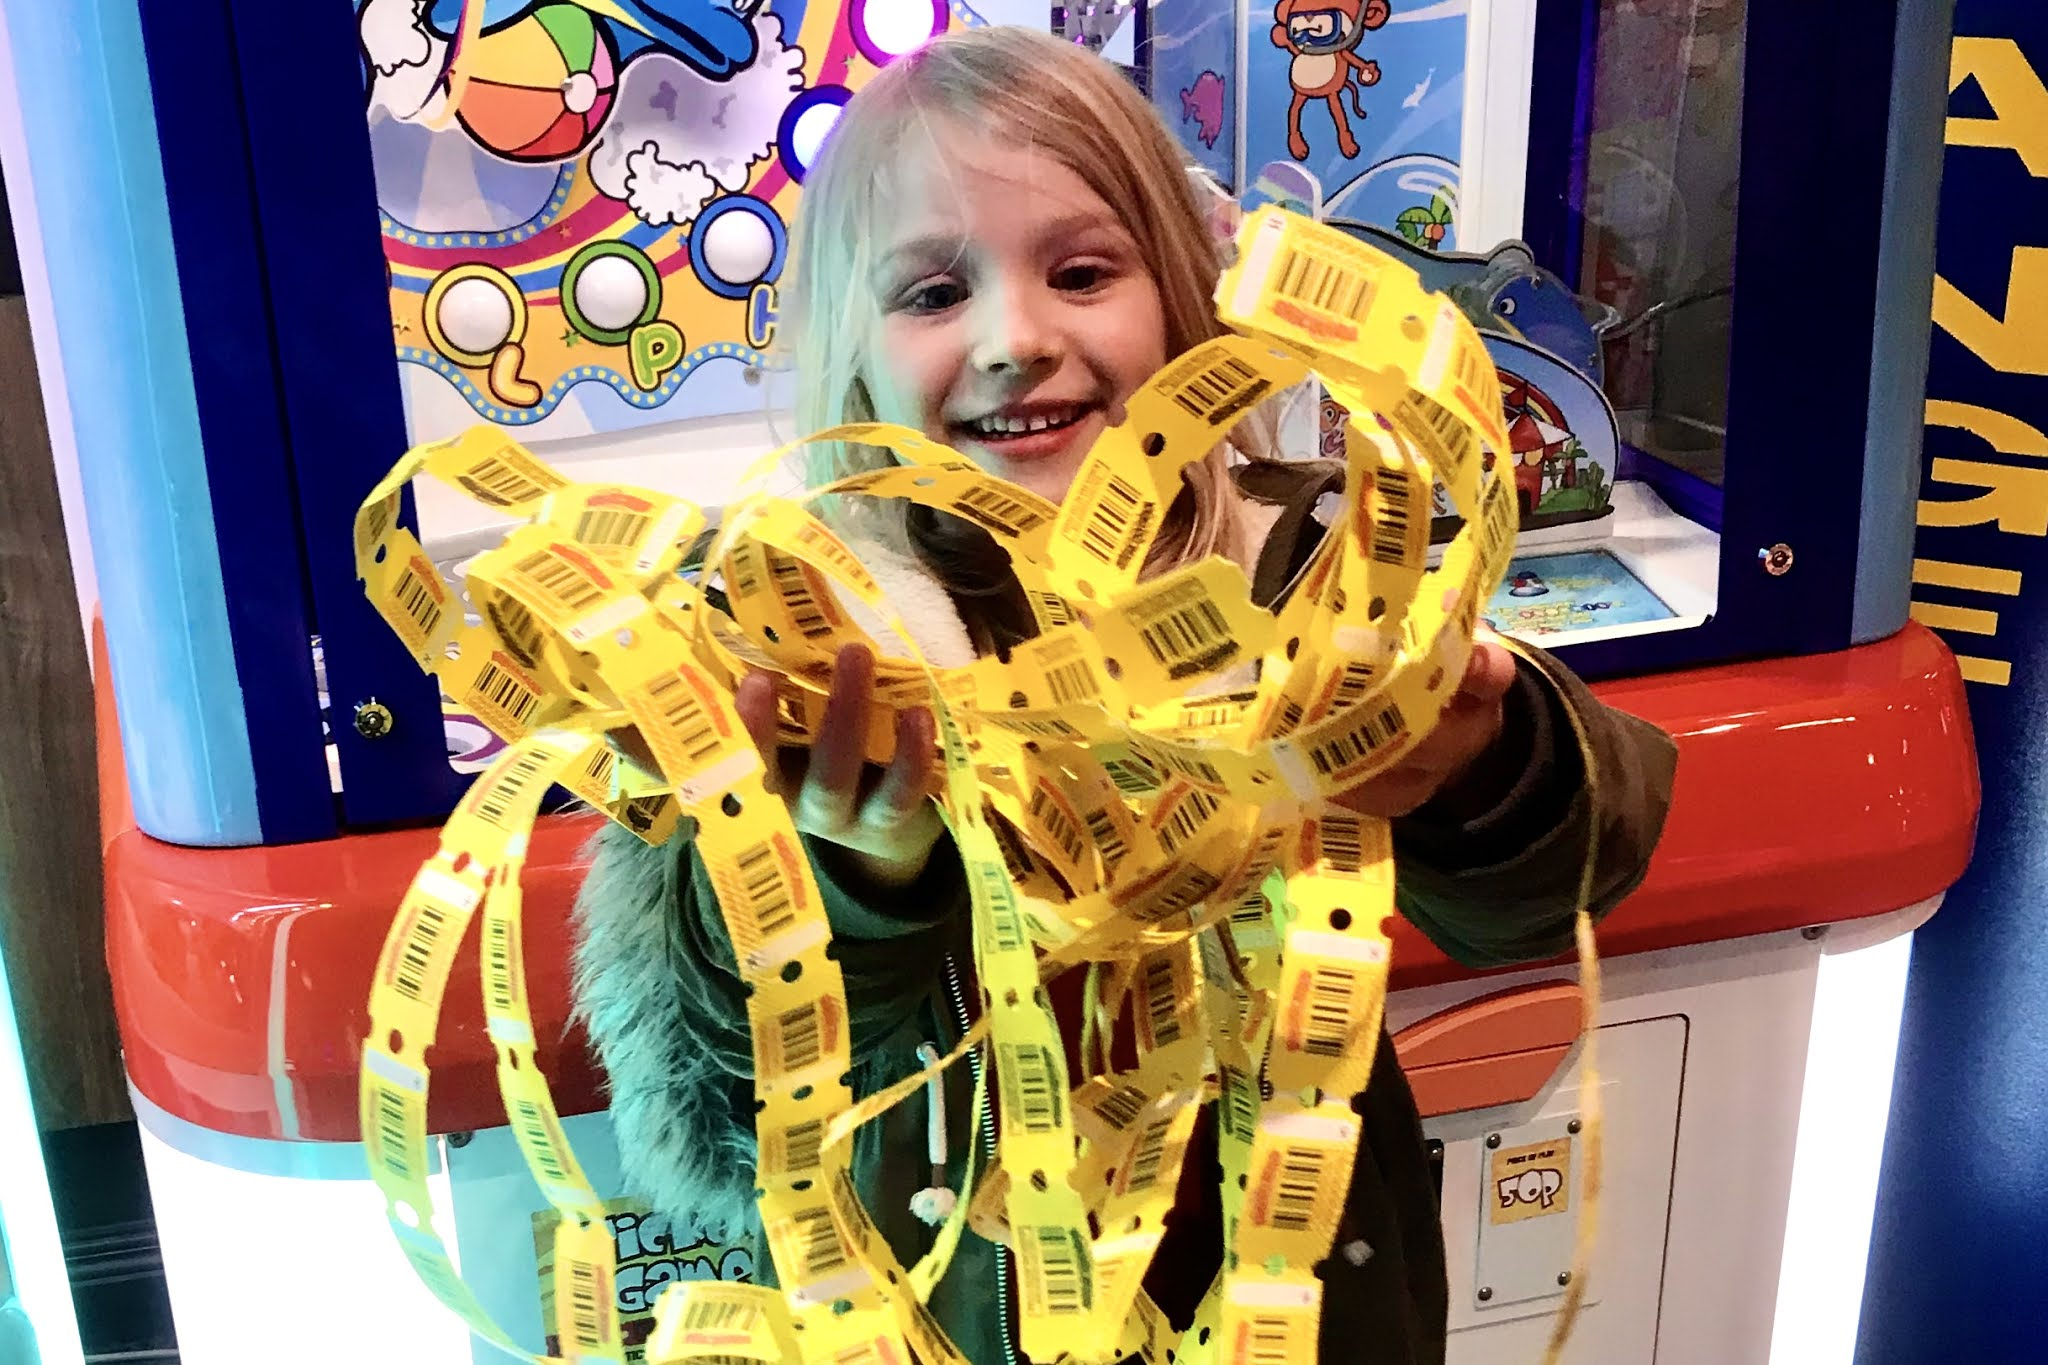 A girl holding an armful of winning tickets from an arcade machine